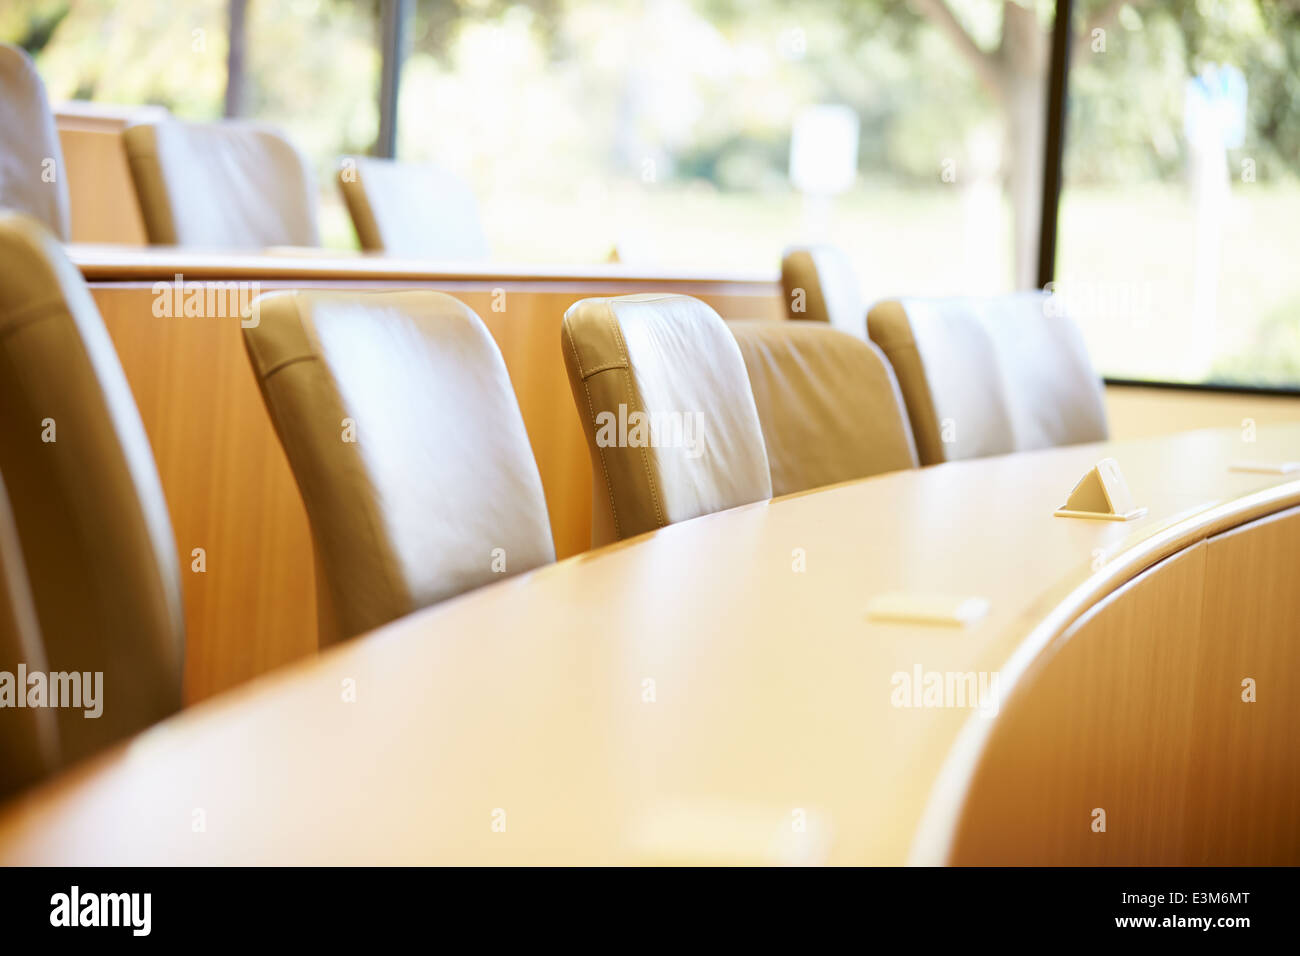 Empty Seats In University Lecture Theatre - Stock Image